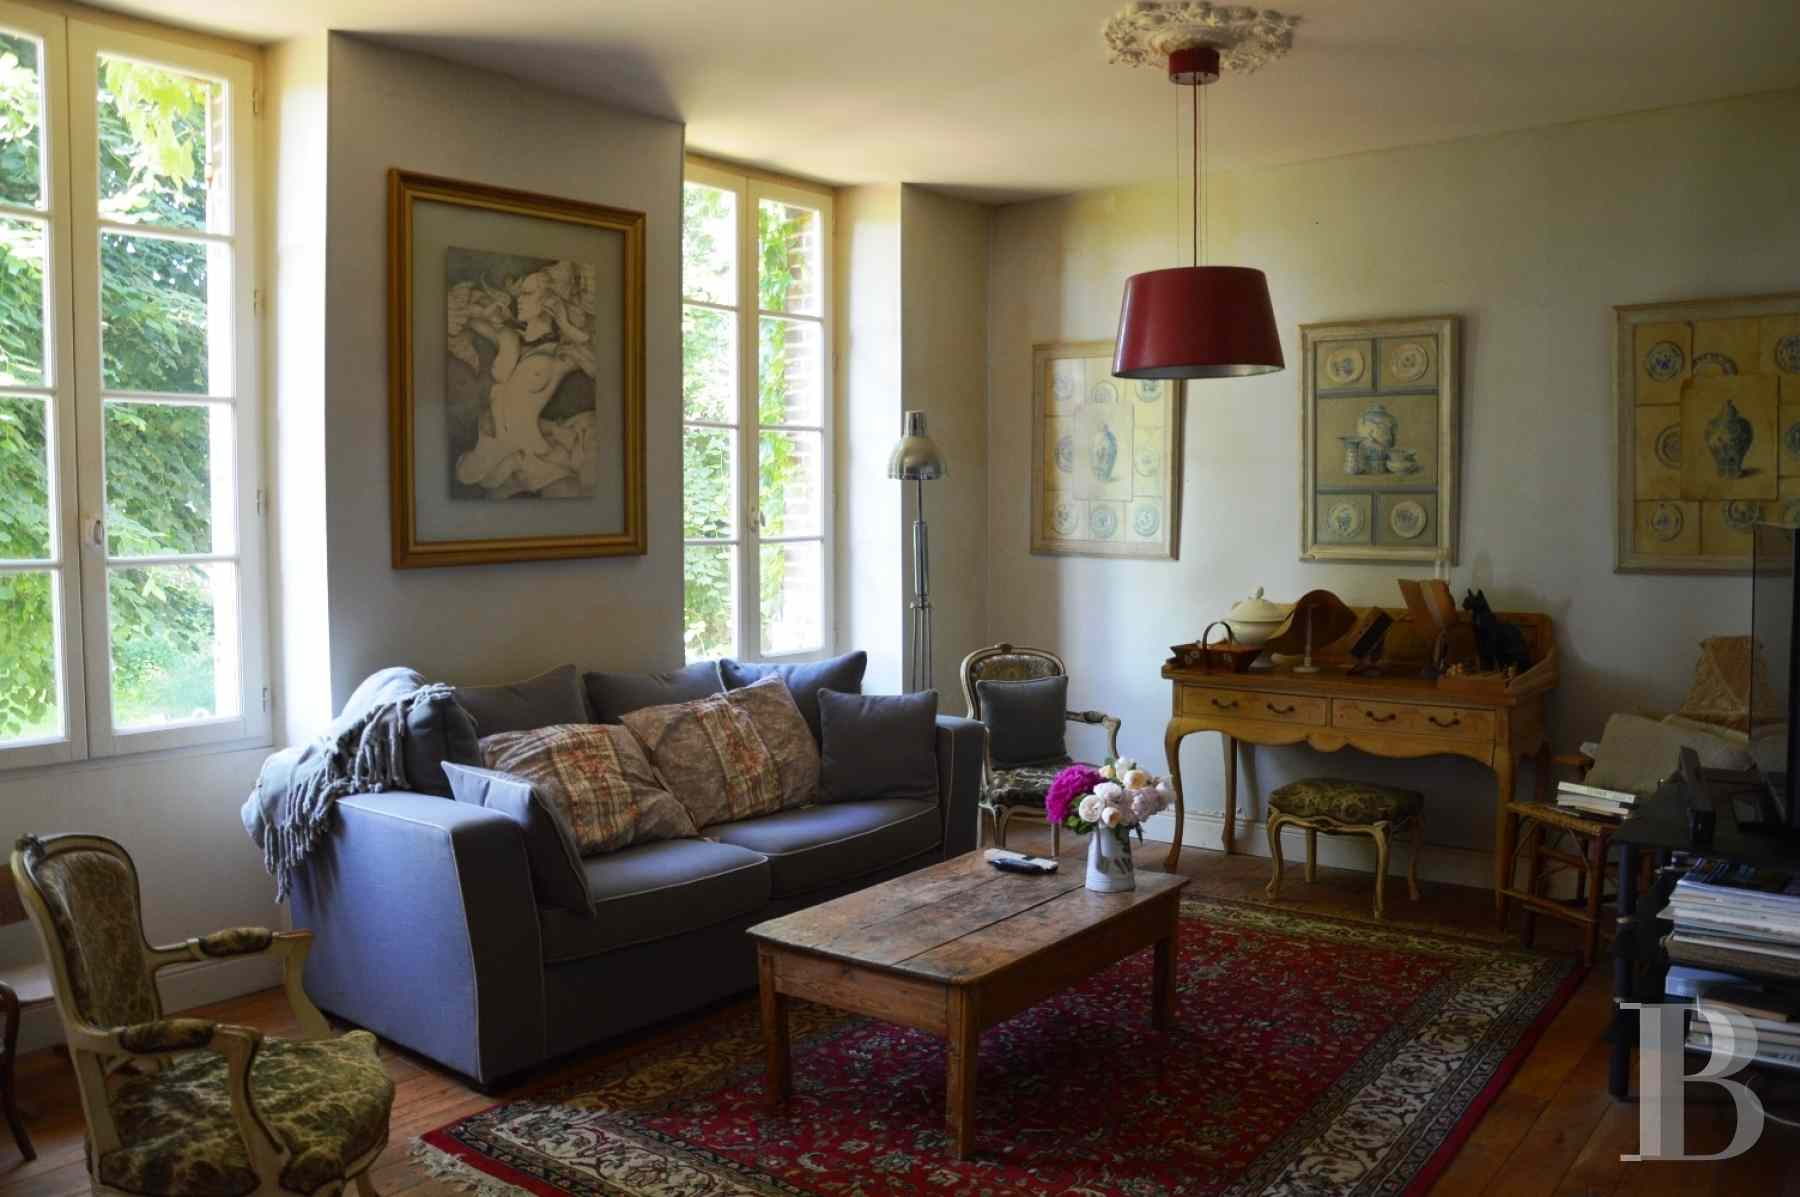 character properties France center val de loire residence vestiges - 6 zoom